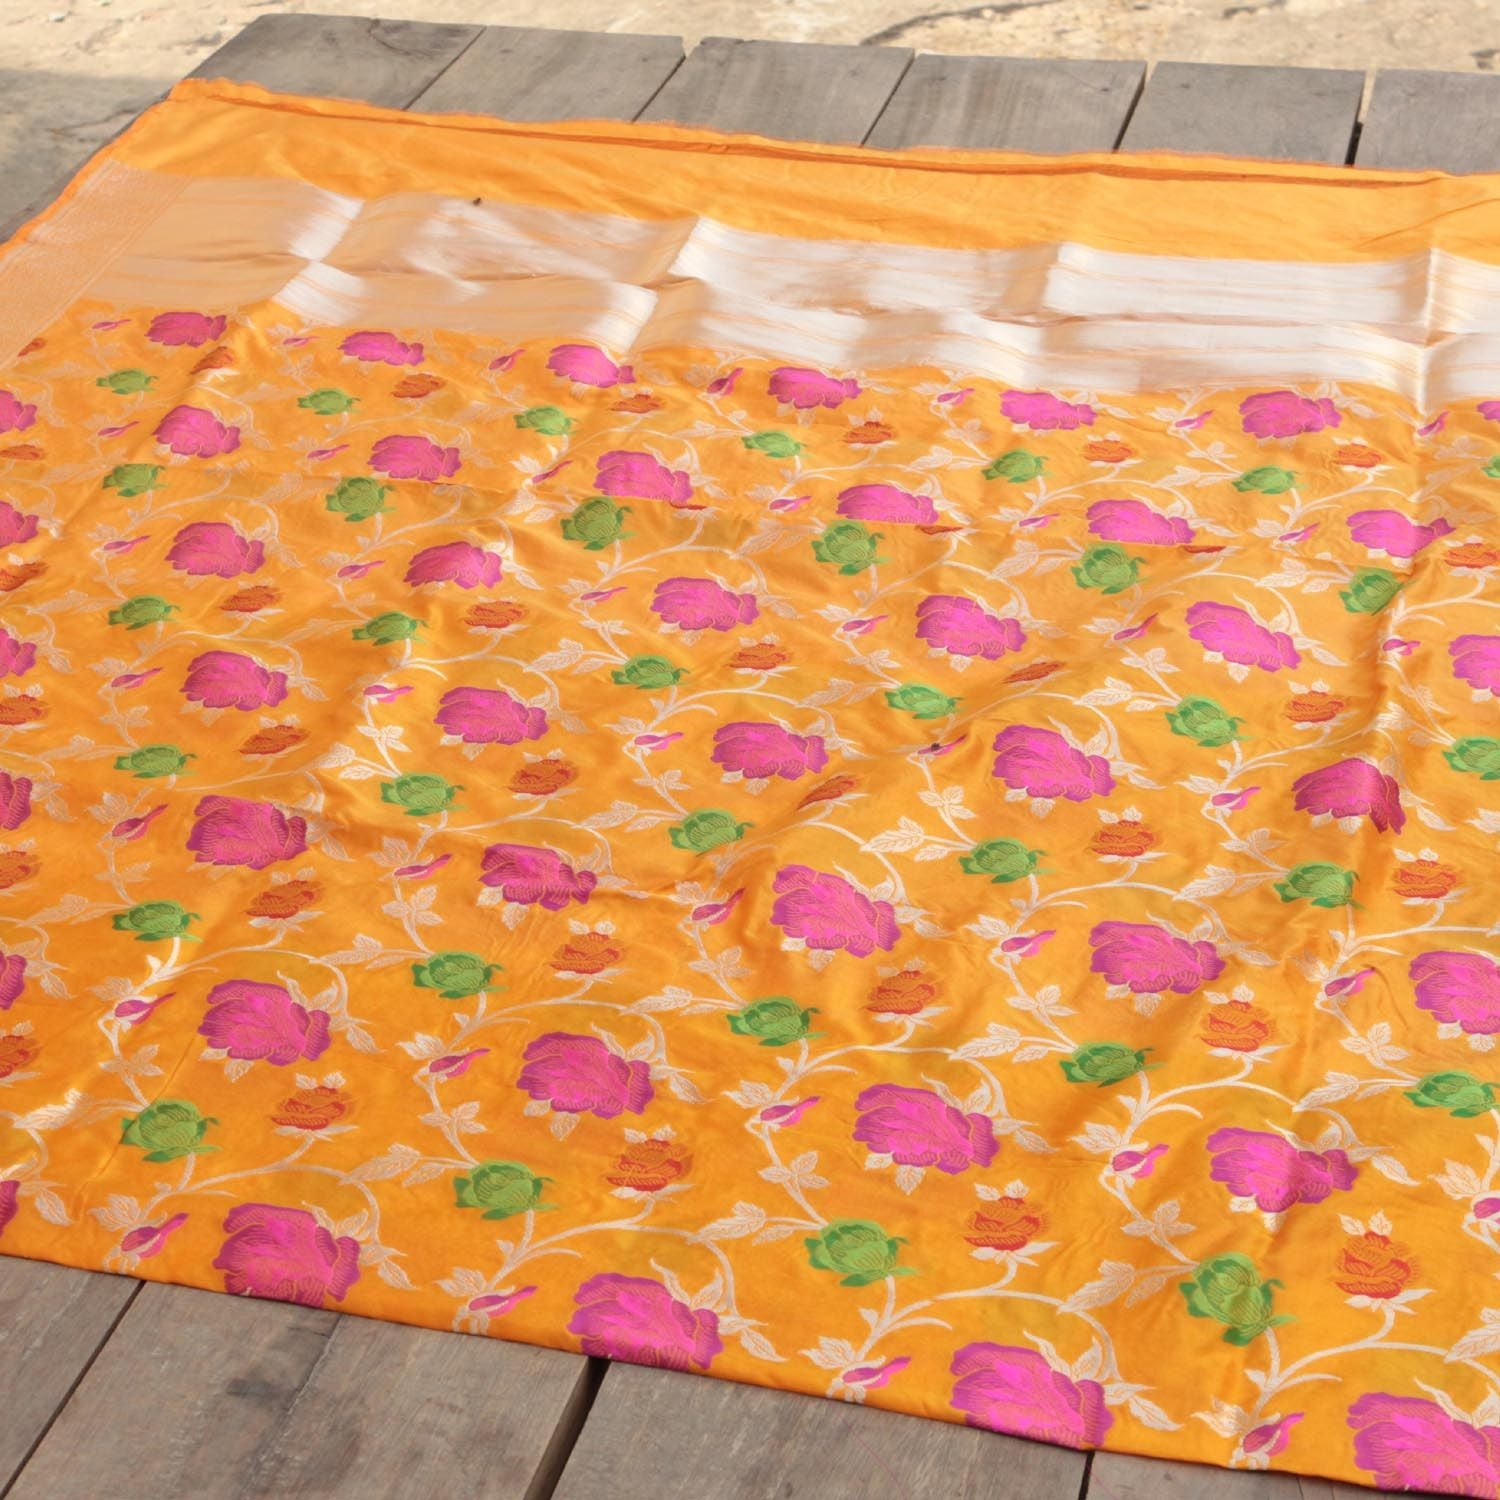 Orange-Yellow Pure Katan Silk Banarasi Handloom Dupatta - Tilfi